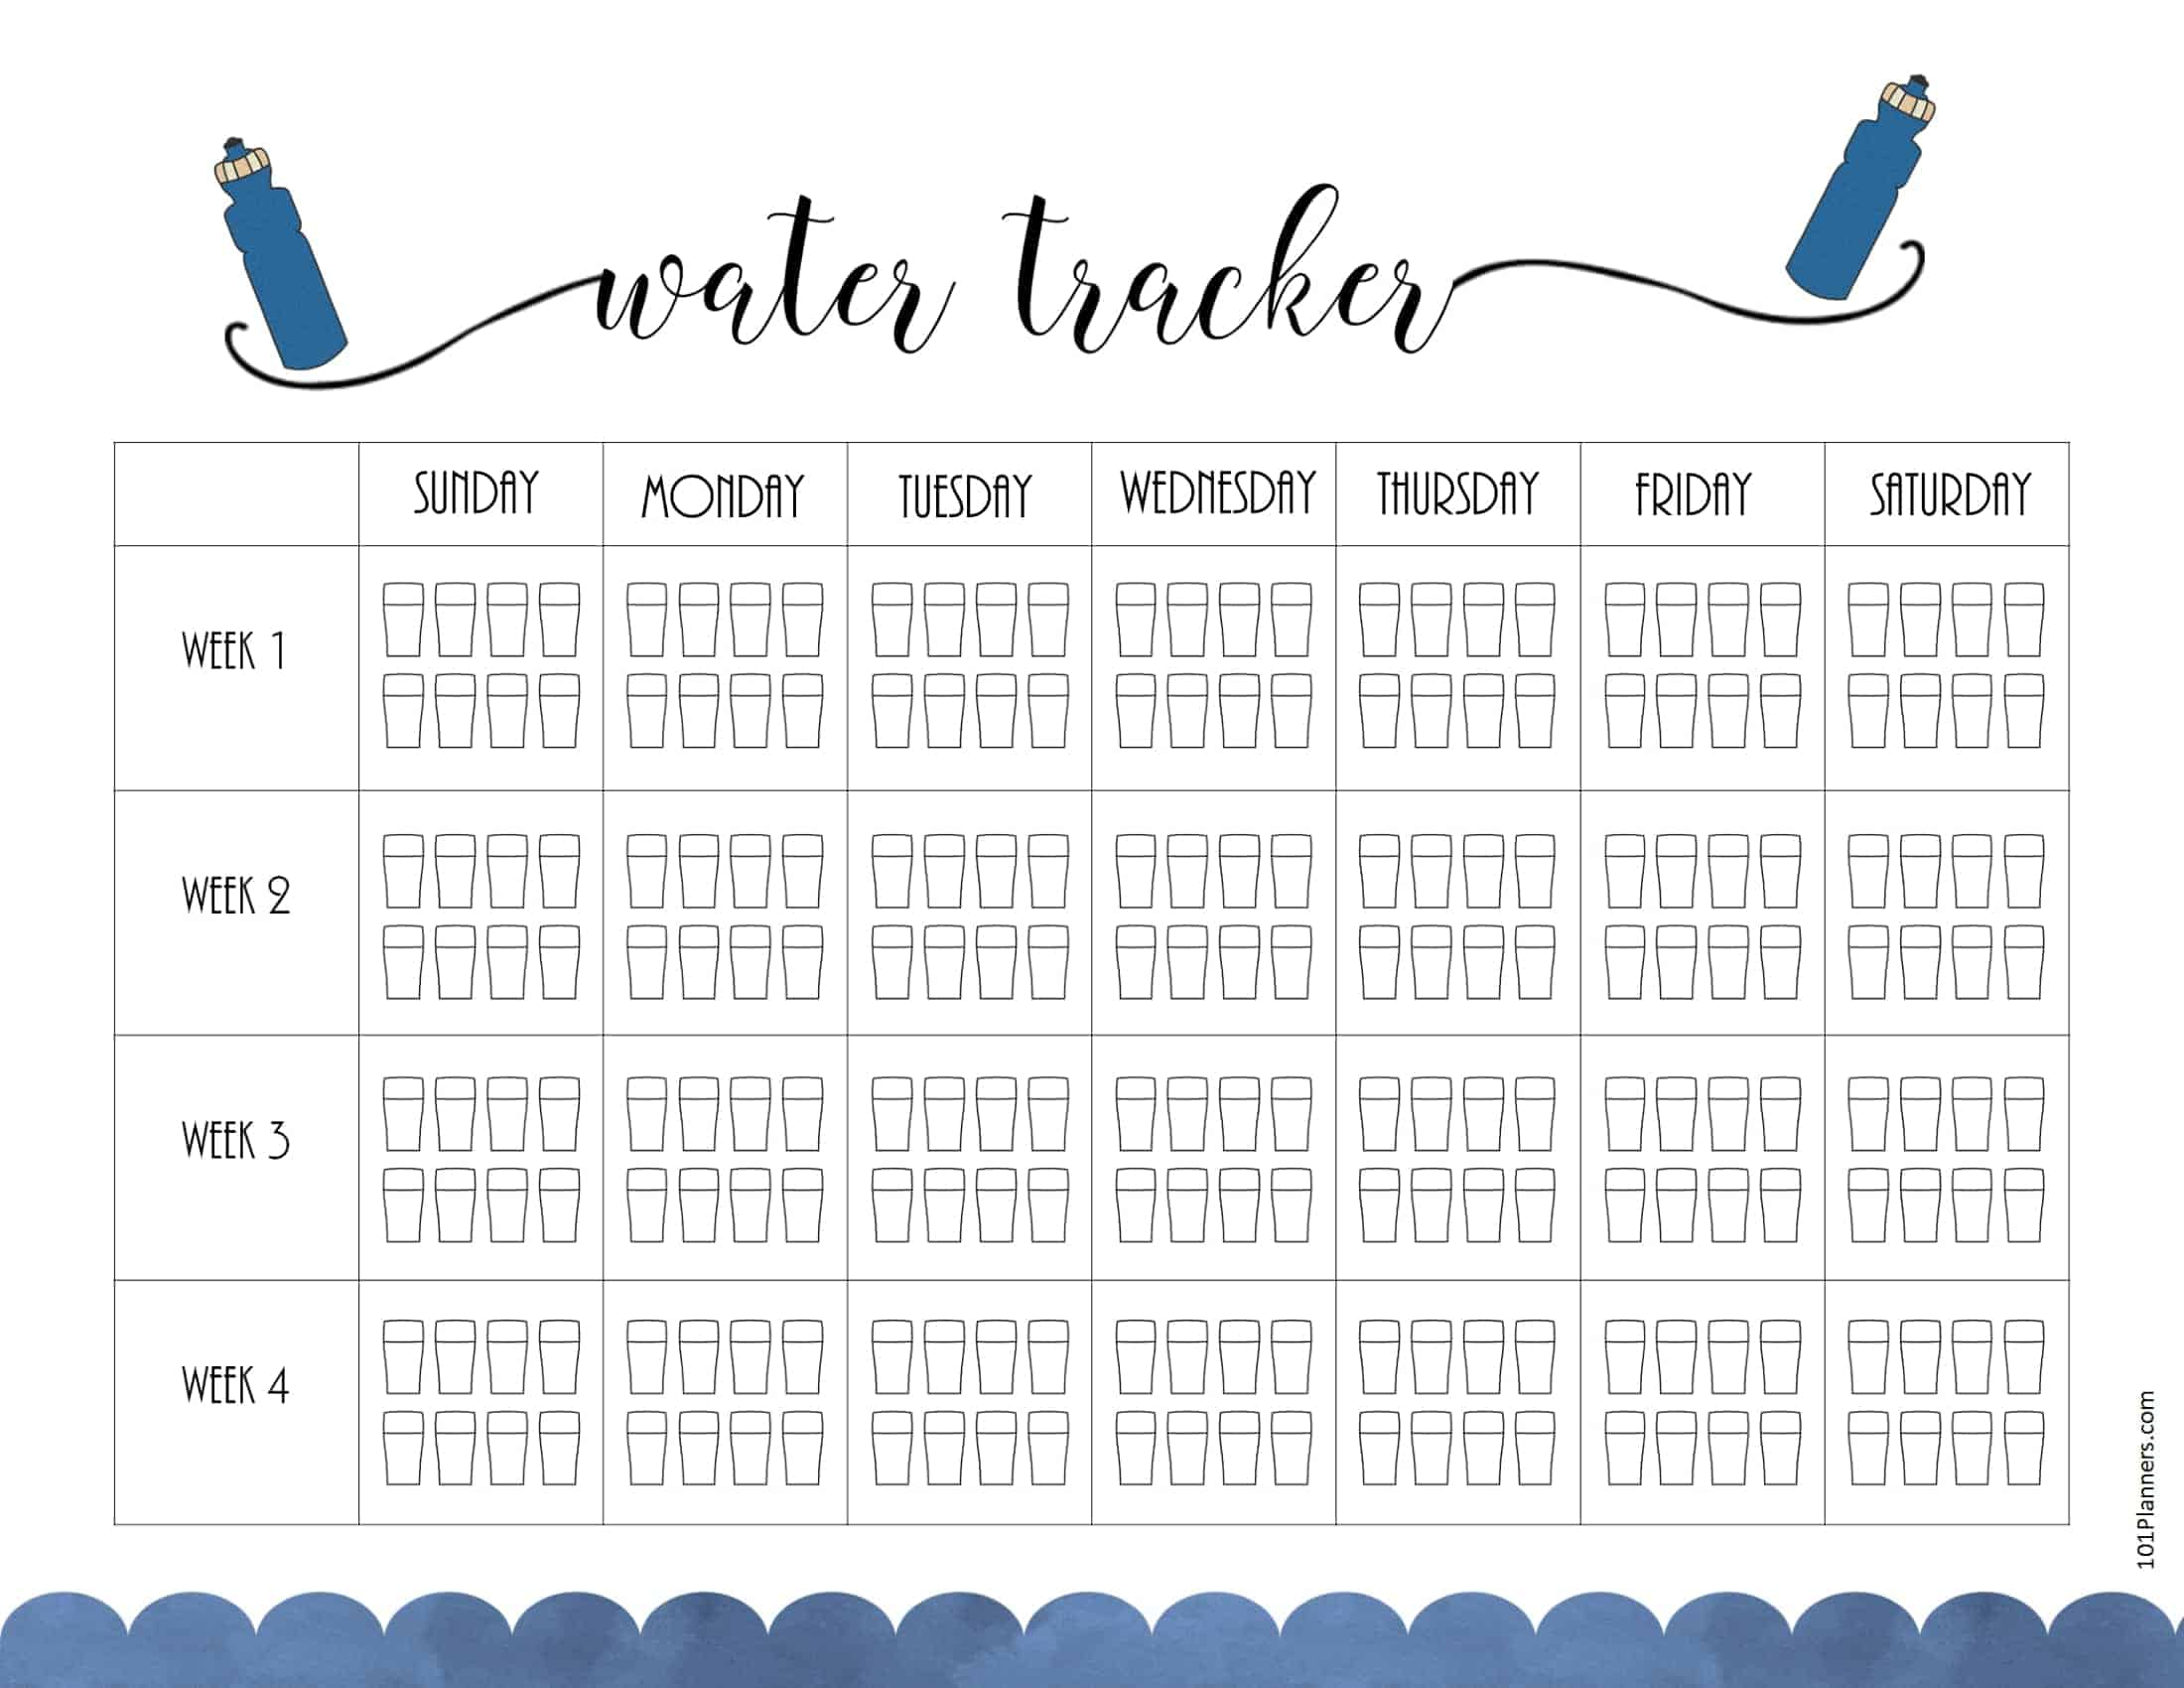 Agile image with water tracker printable